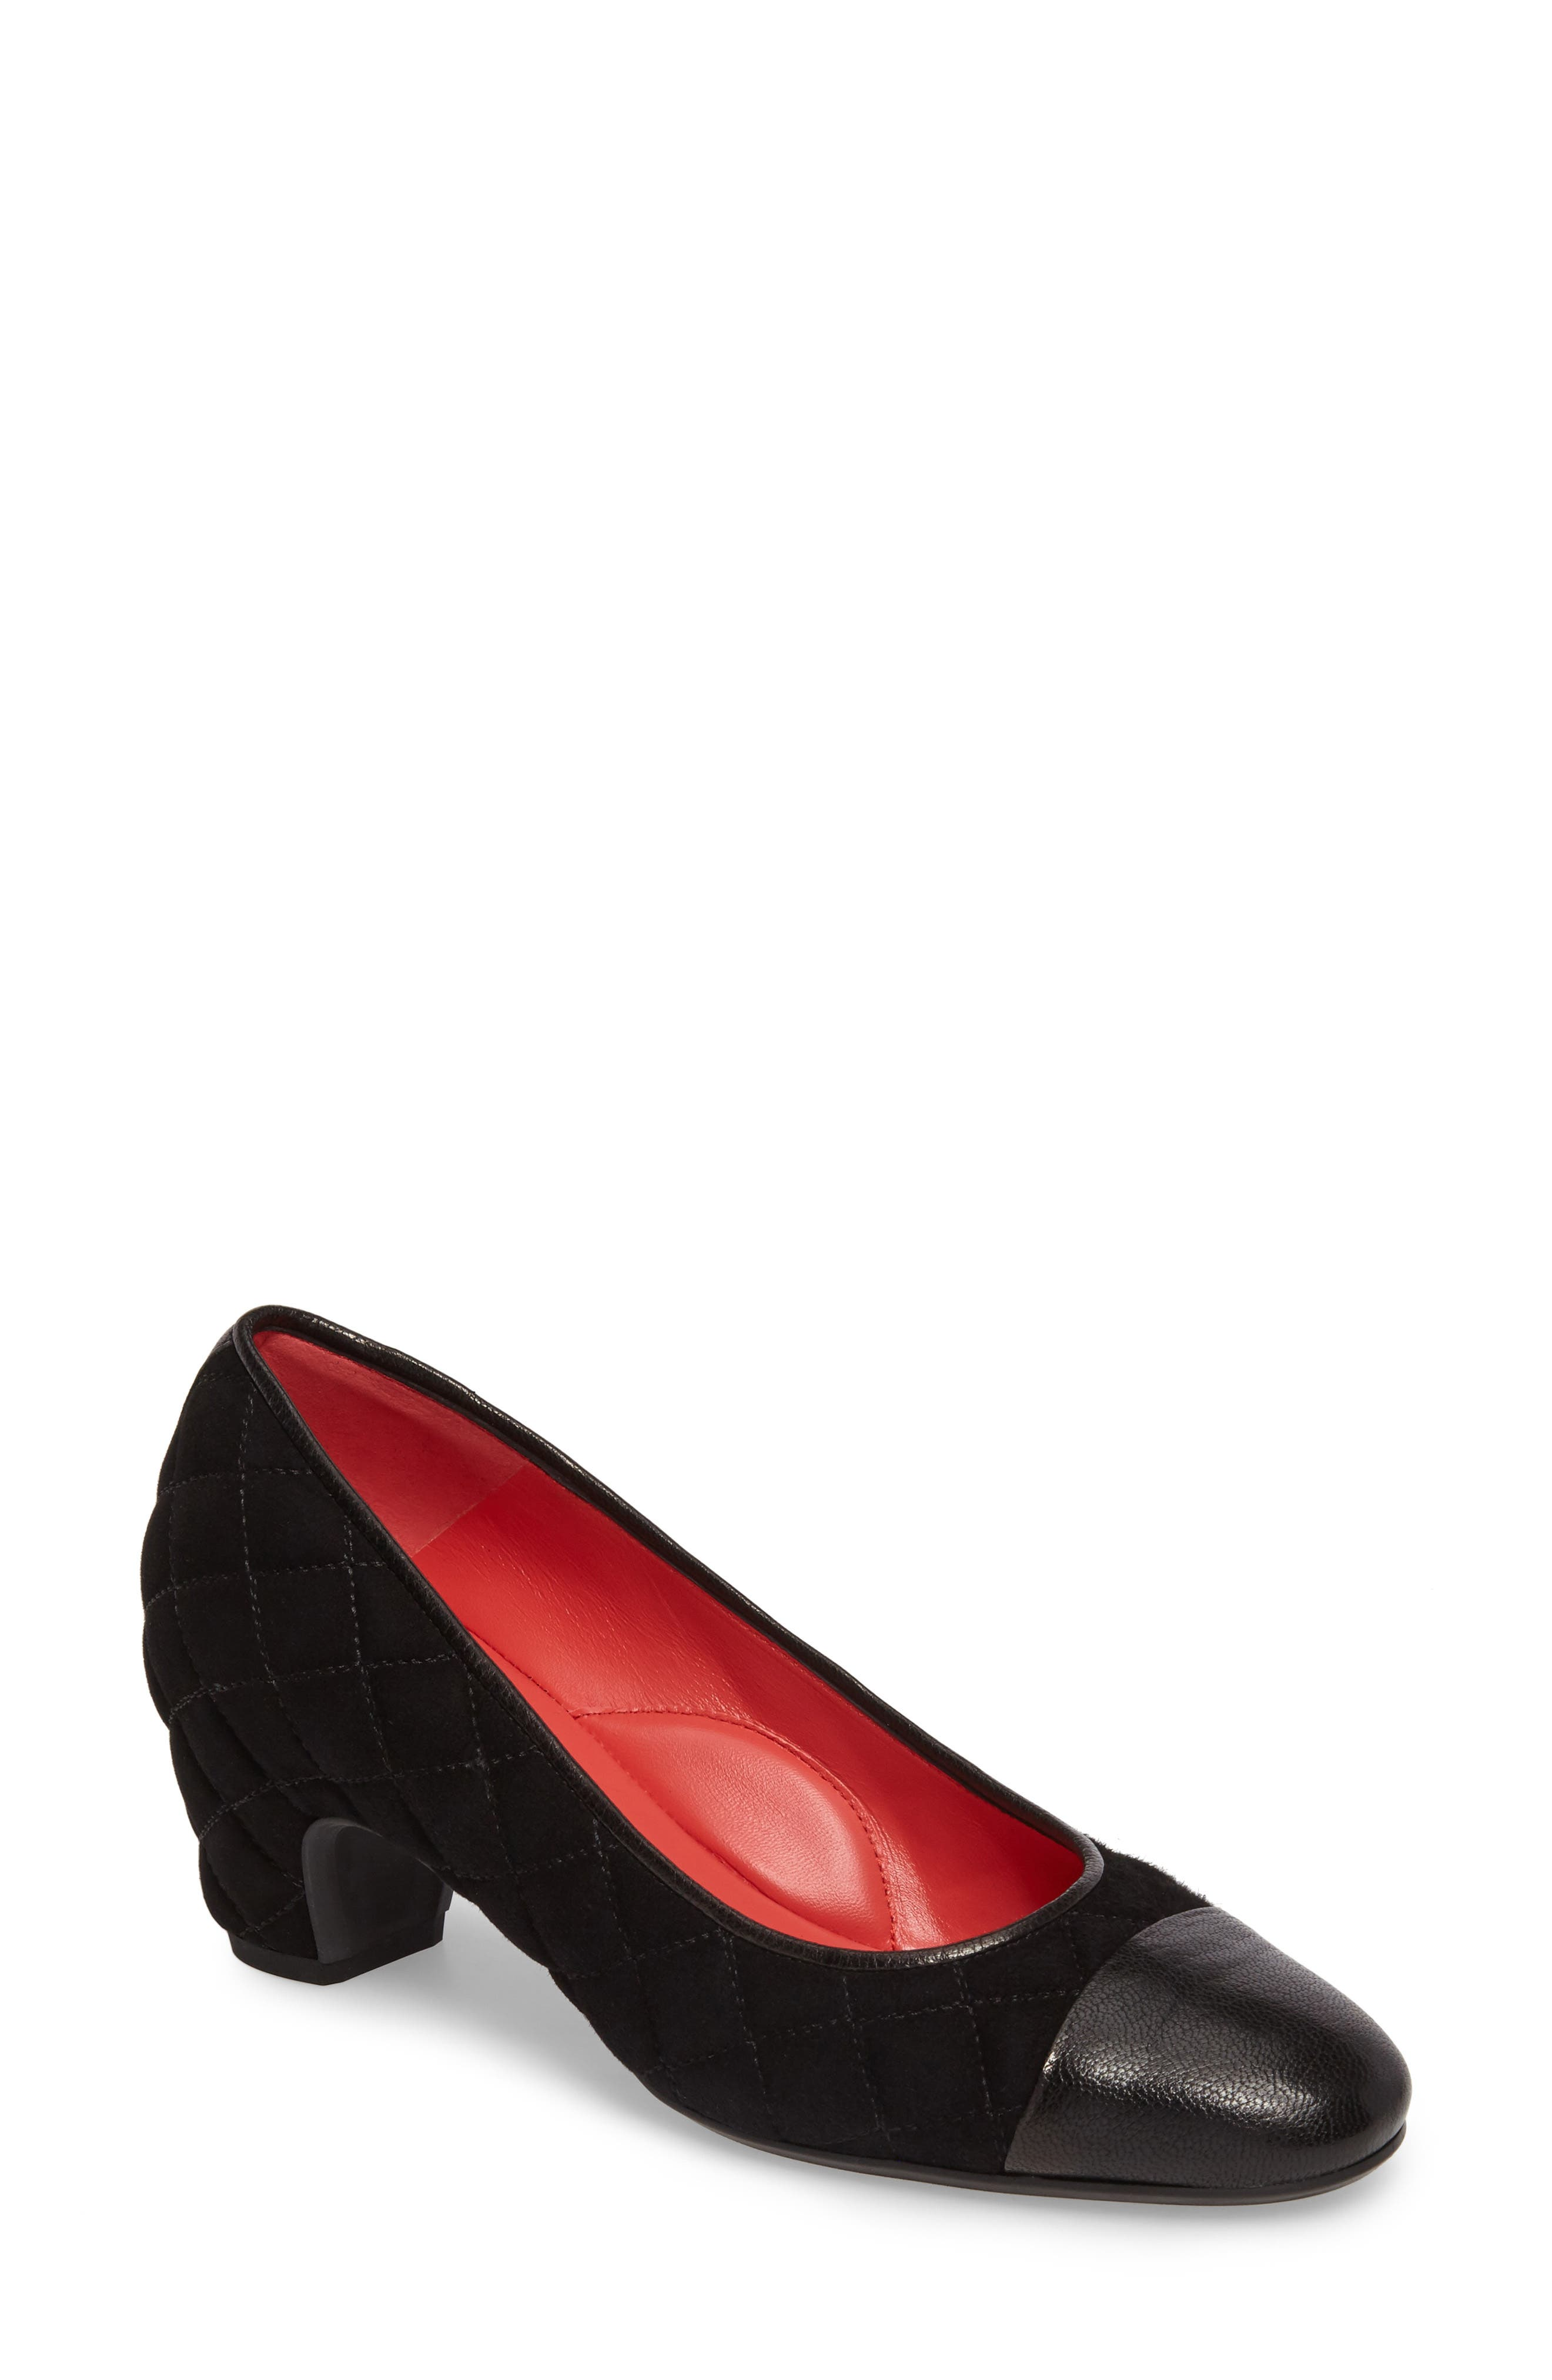 Quilted Cap Toe Pump,                         Main,                         color, Black Suede/ Black Leather